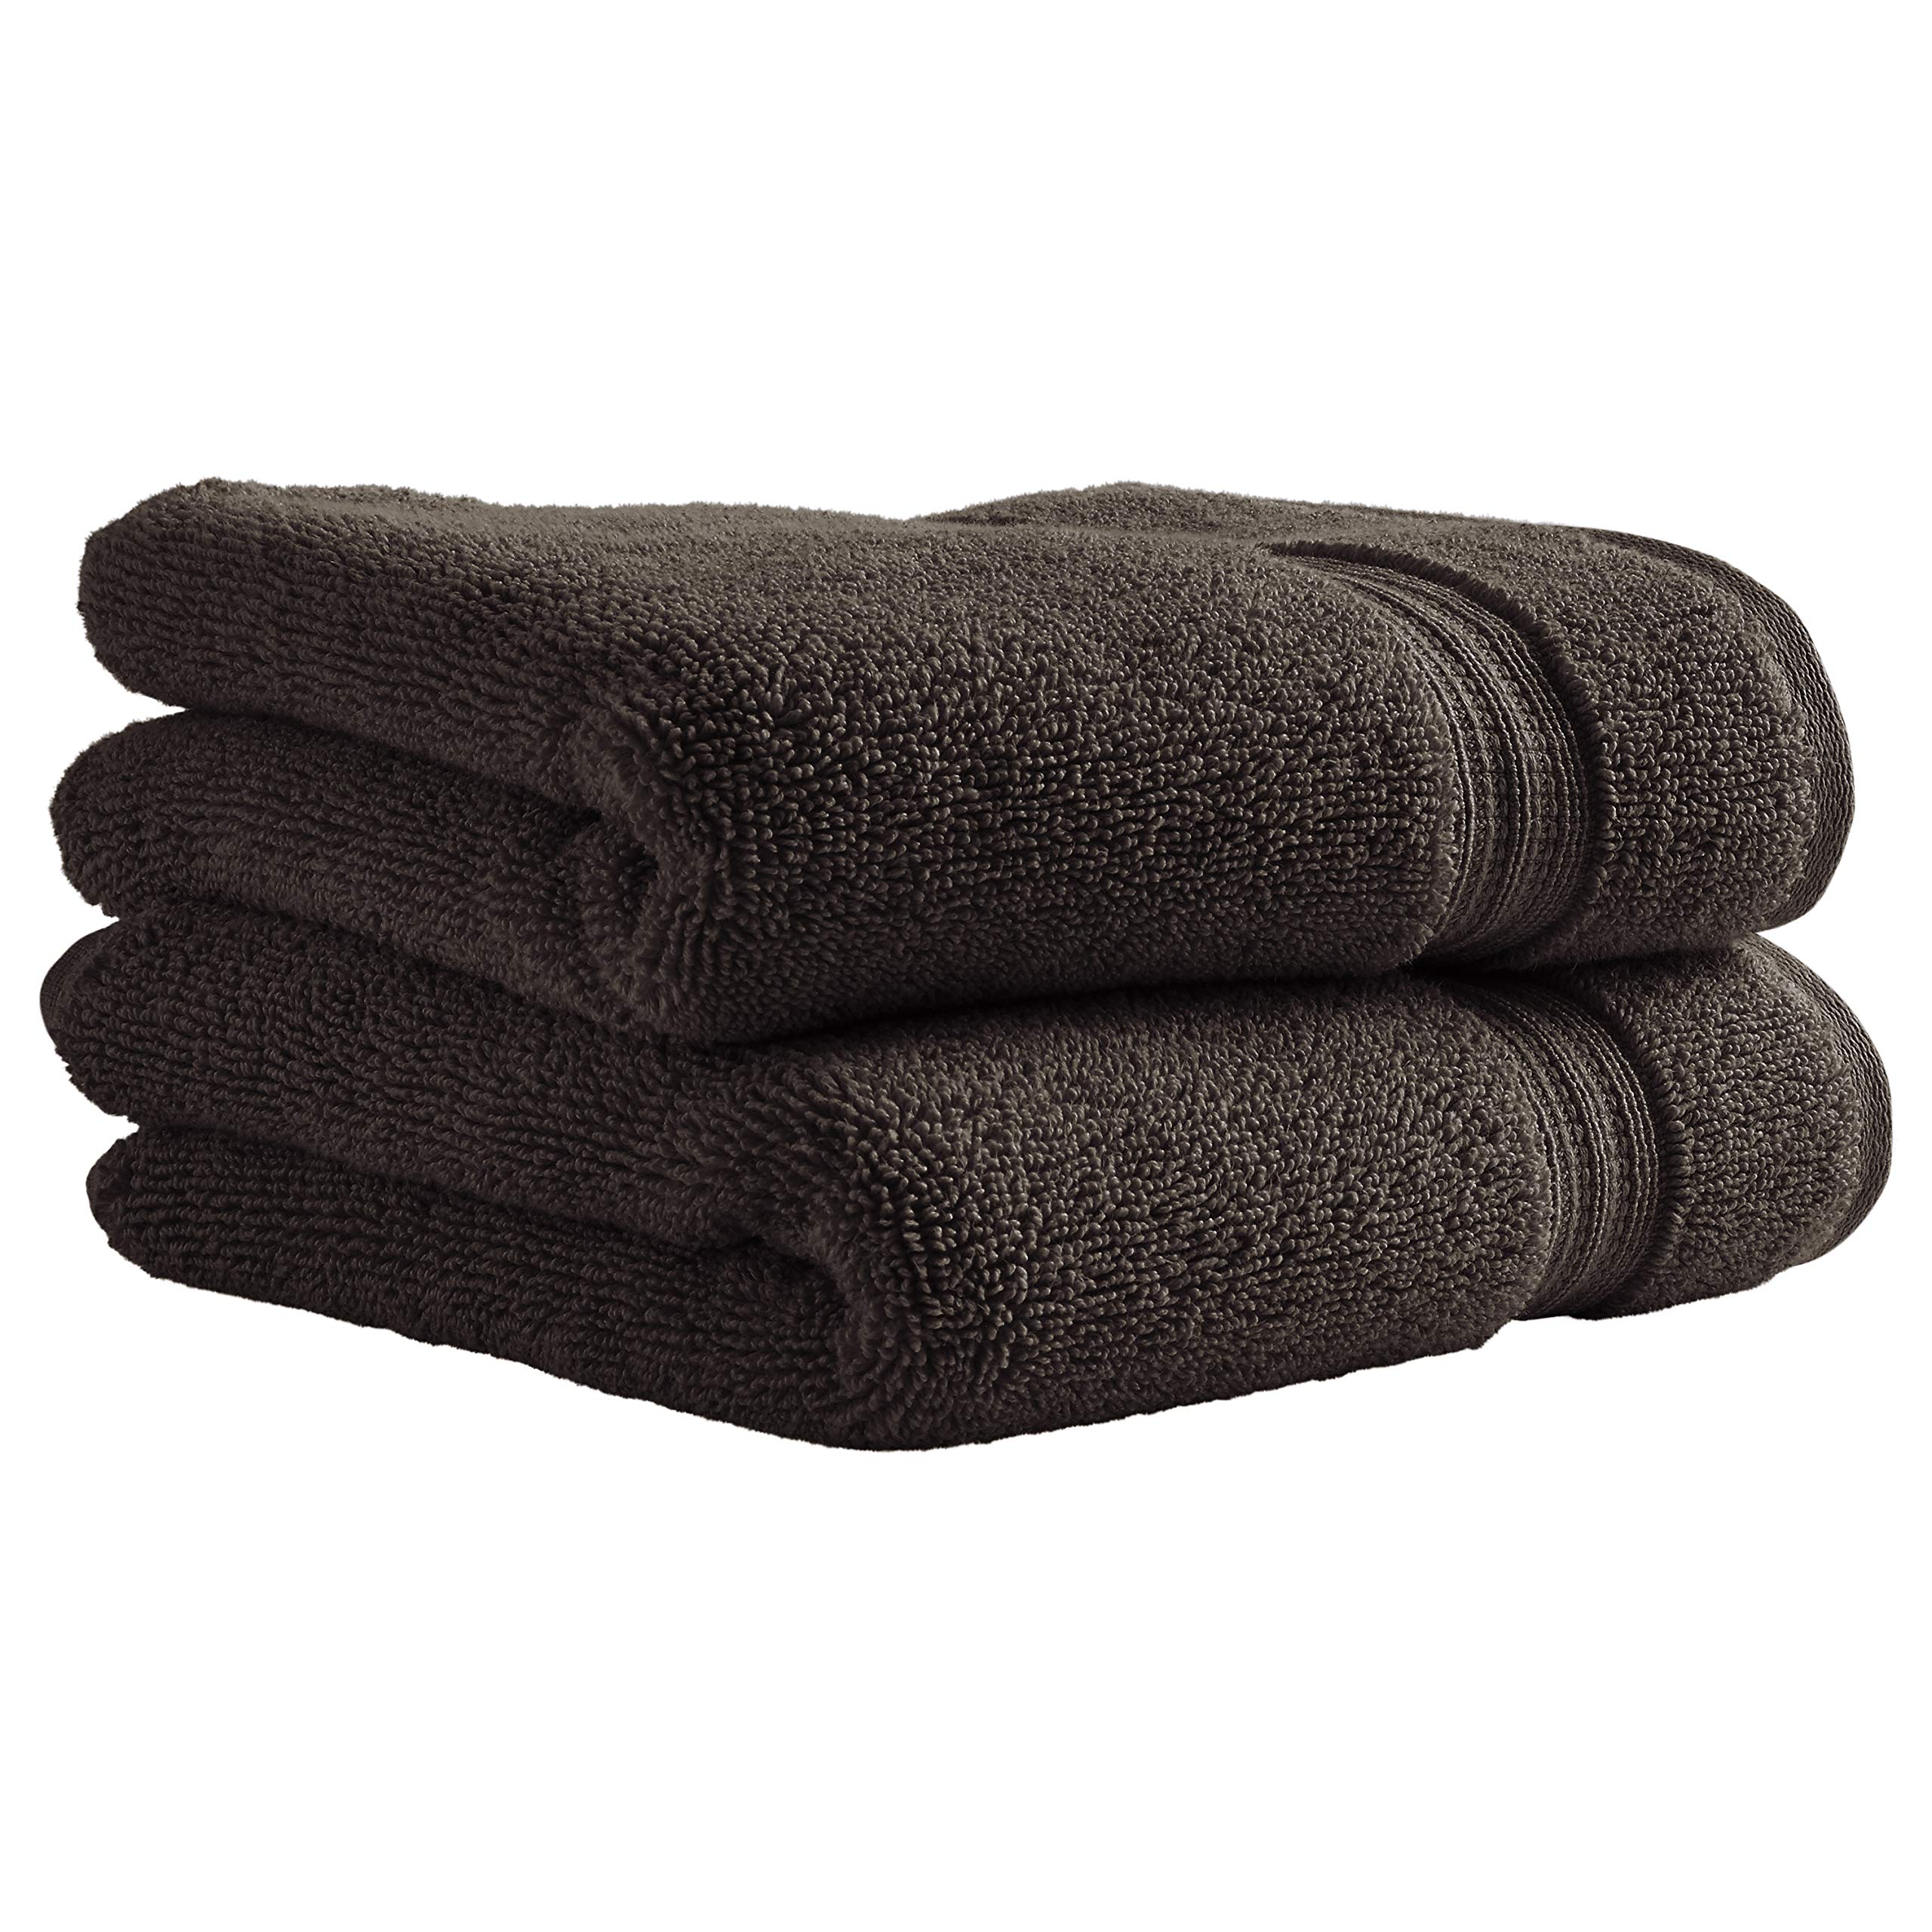 Stone & Beam Classic Egyptian Cotton Hand Towel Set, 2-Pack, Charcoal